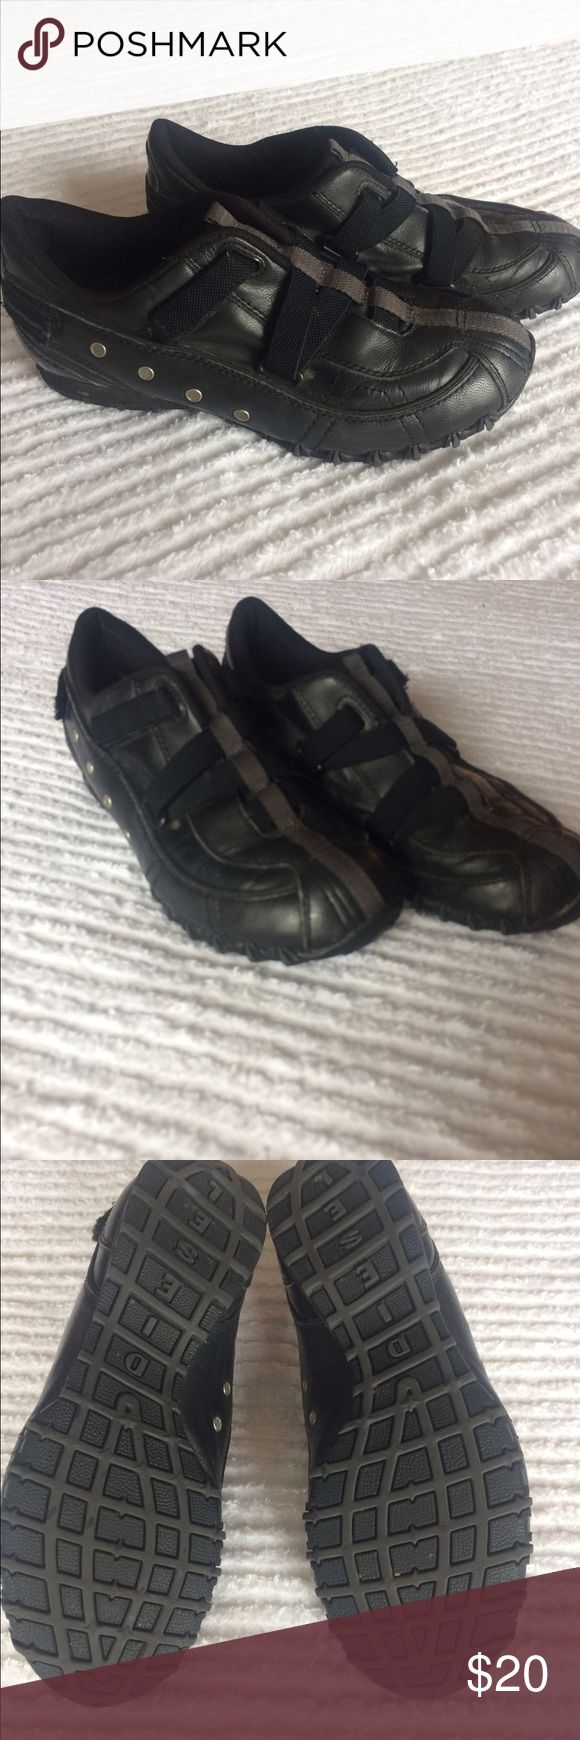 Diesel black leather shoes 6.5 Authentic Diesel black leather slip on shoes. Size 6.5, amazing condition. Too small for me. Diesel Shoes Sneakers